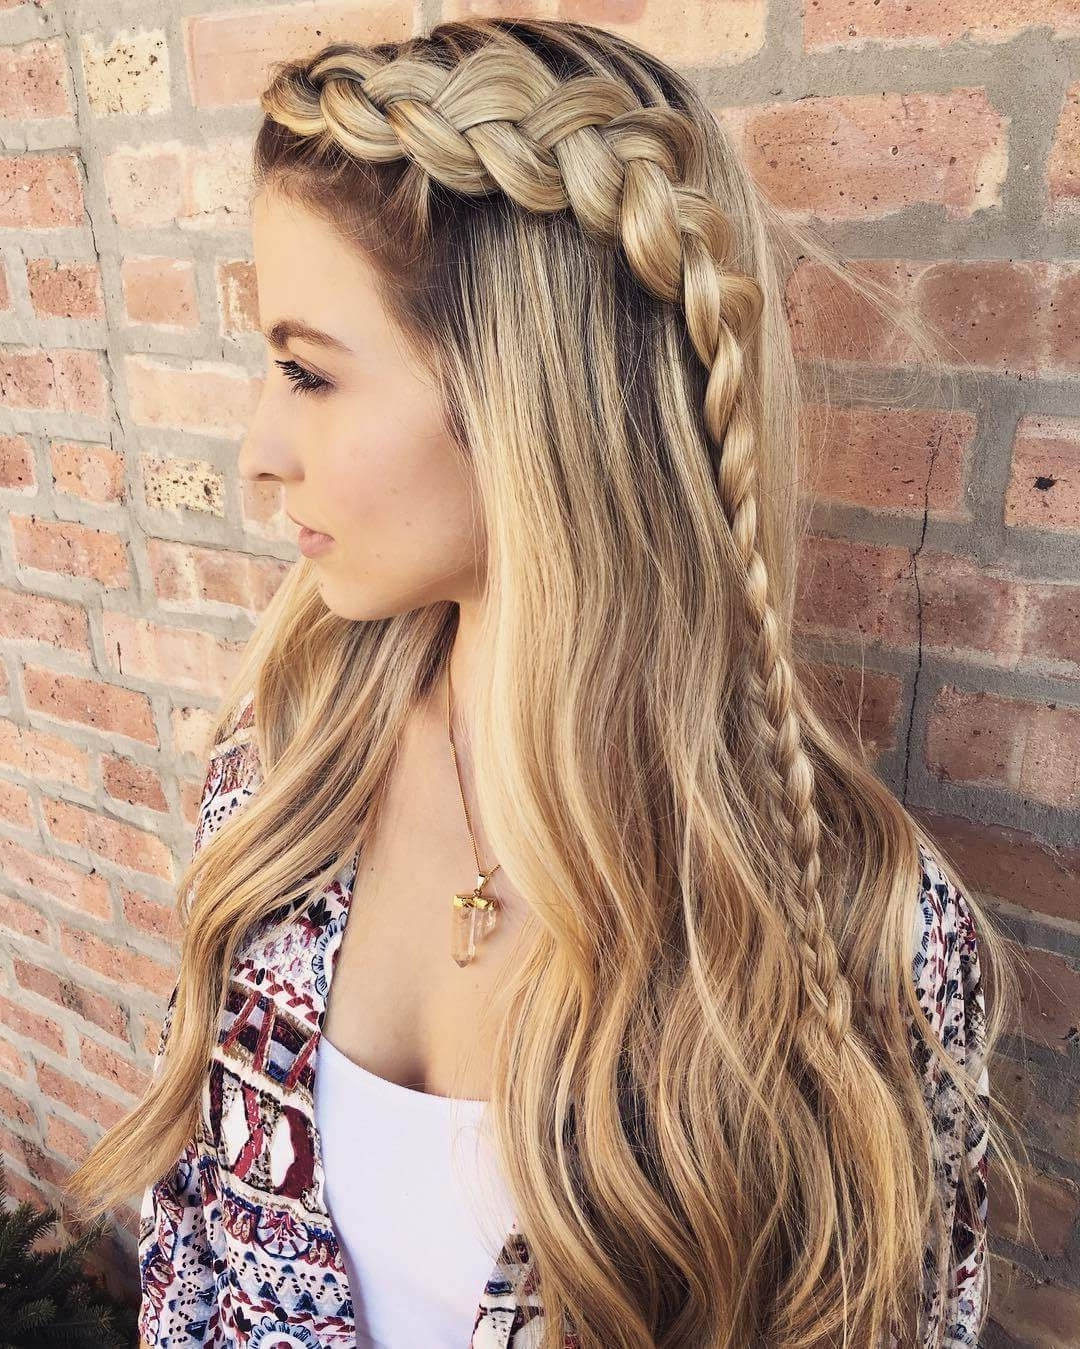 25 Effortless Side Braid Hairstyles To Make You Feel Special Throughout Latest Loose Side French Braid Hairstyles (View 6 of 15)